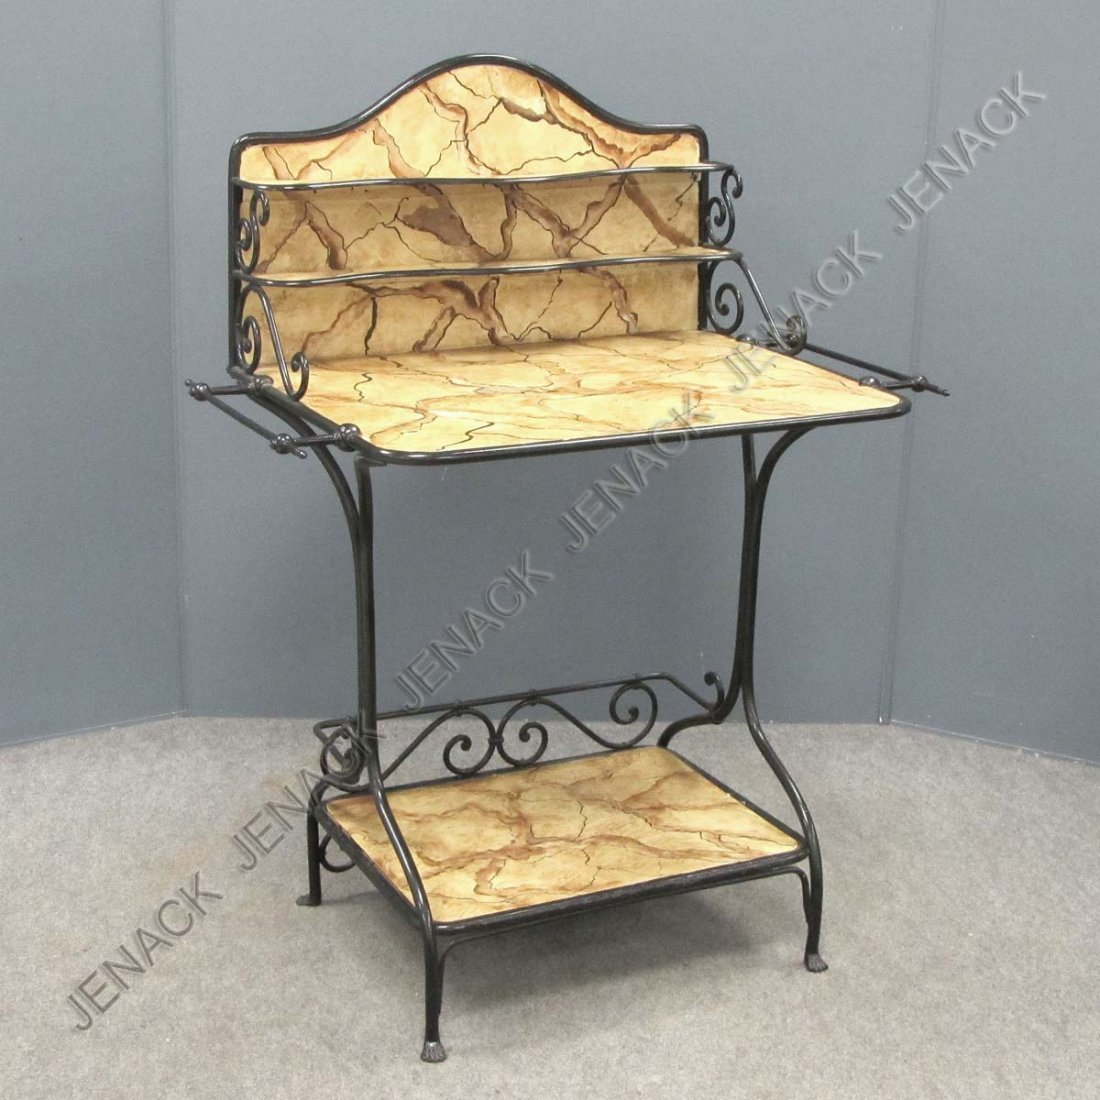 23: VICTORIAN WROUGHT IRON WASHSTAND WITH FAUX MARBLE